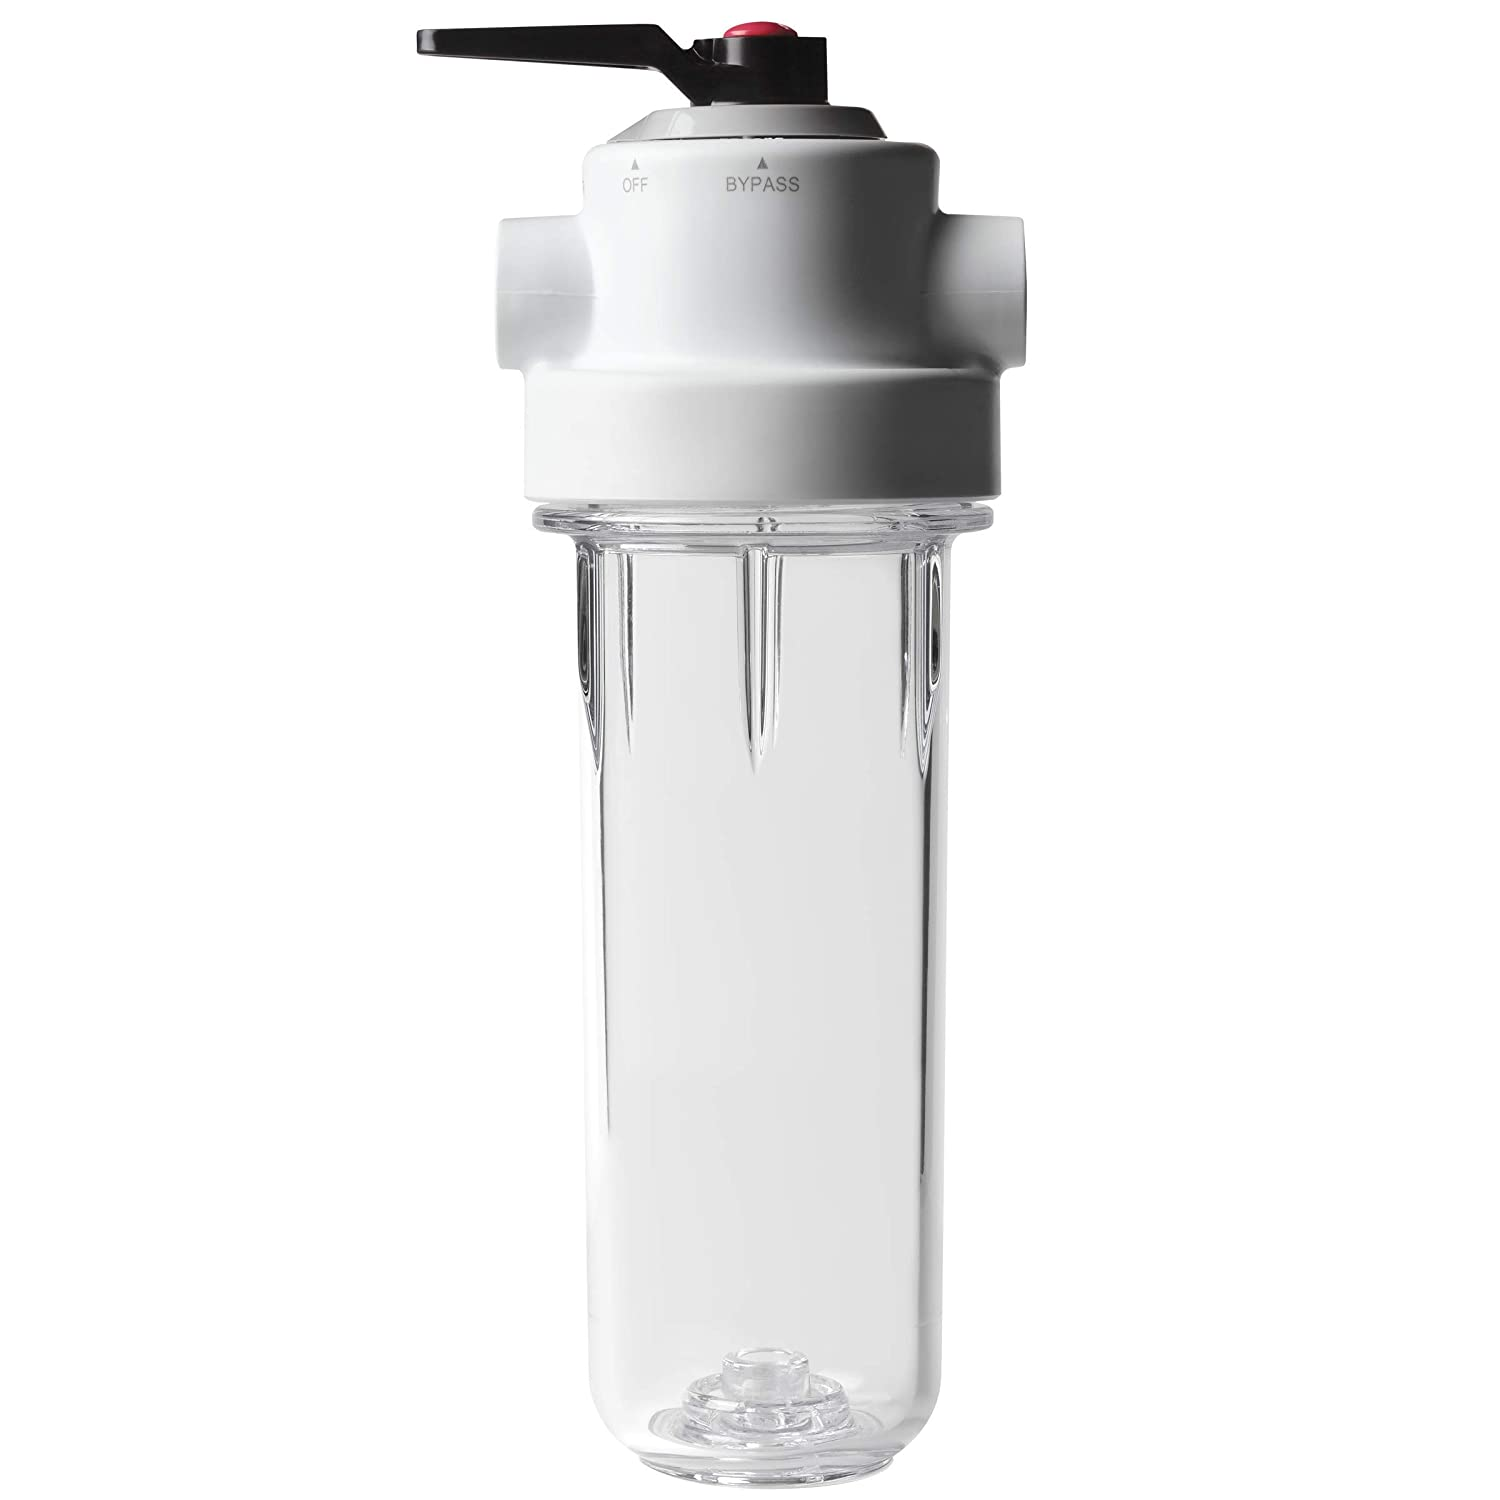 AO Smith Single-Stage Whole House Water Filter - Valve-In-Head System